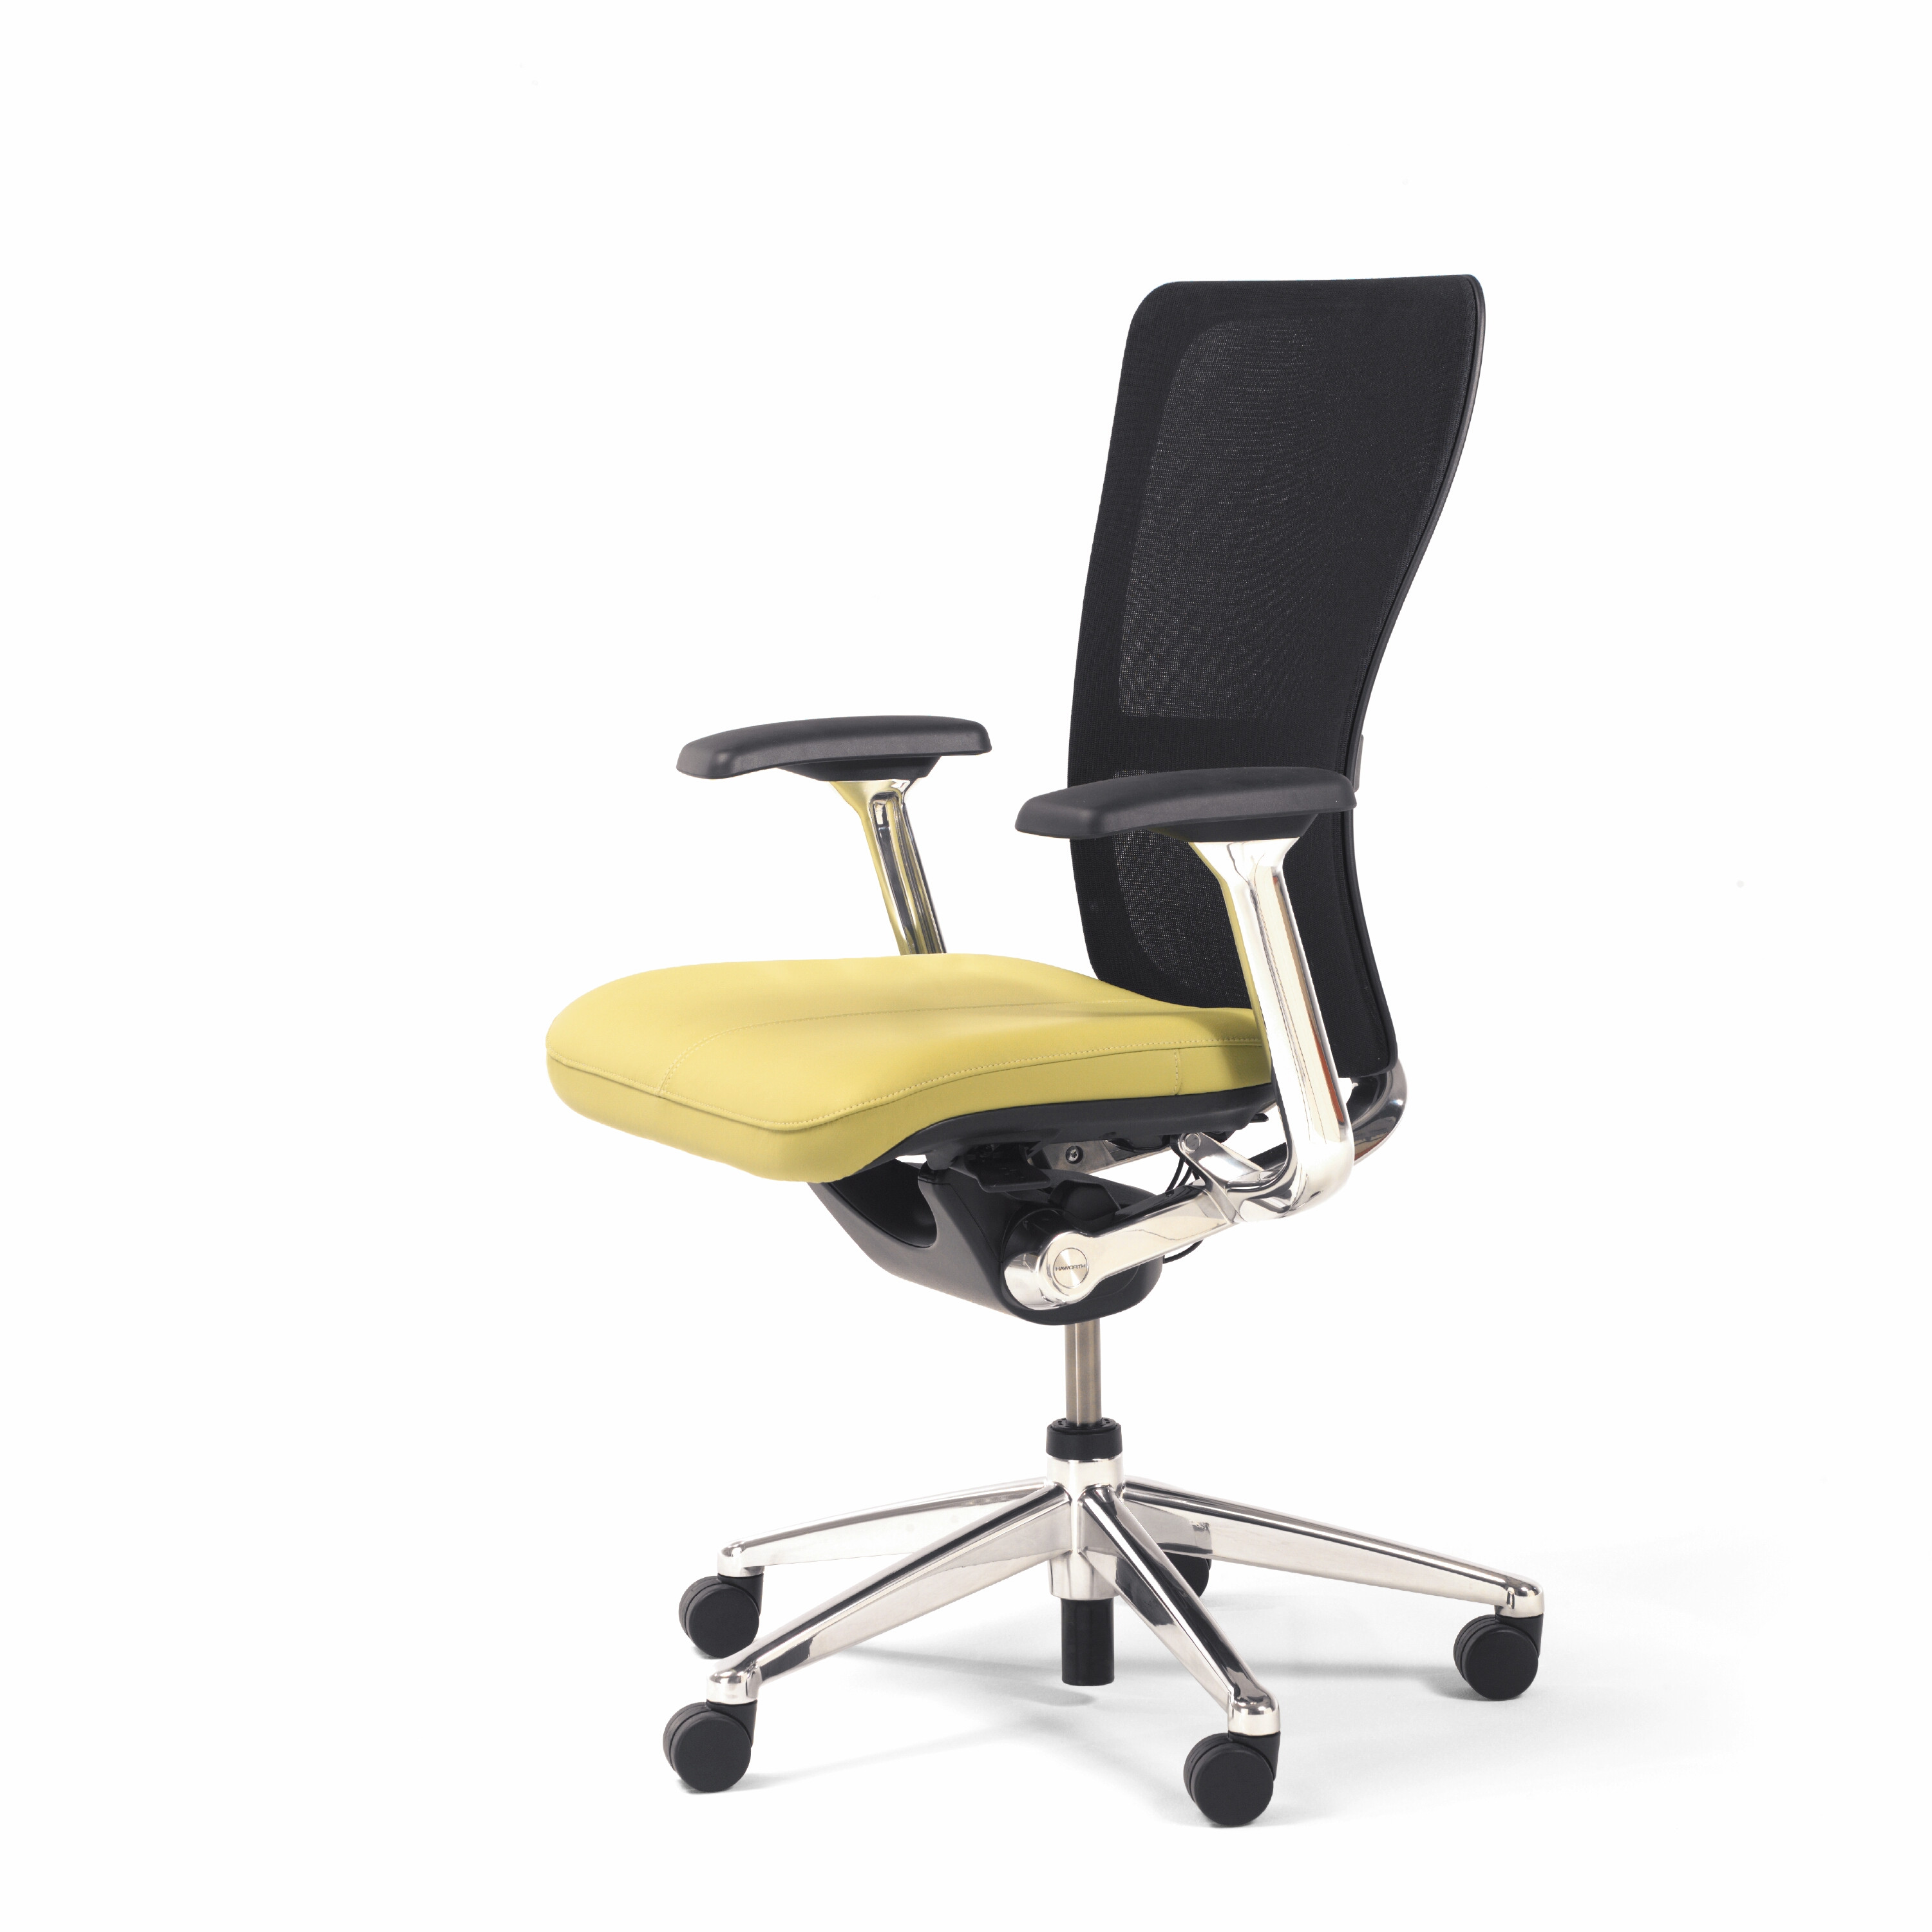 ZODY CHAIR